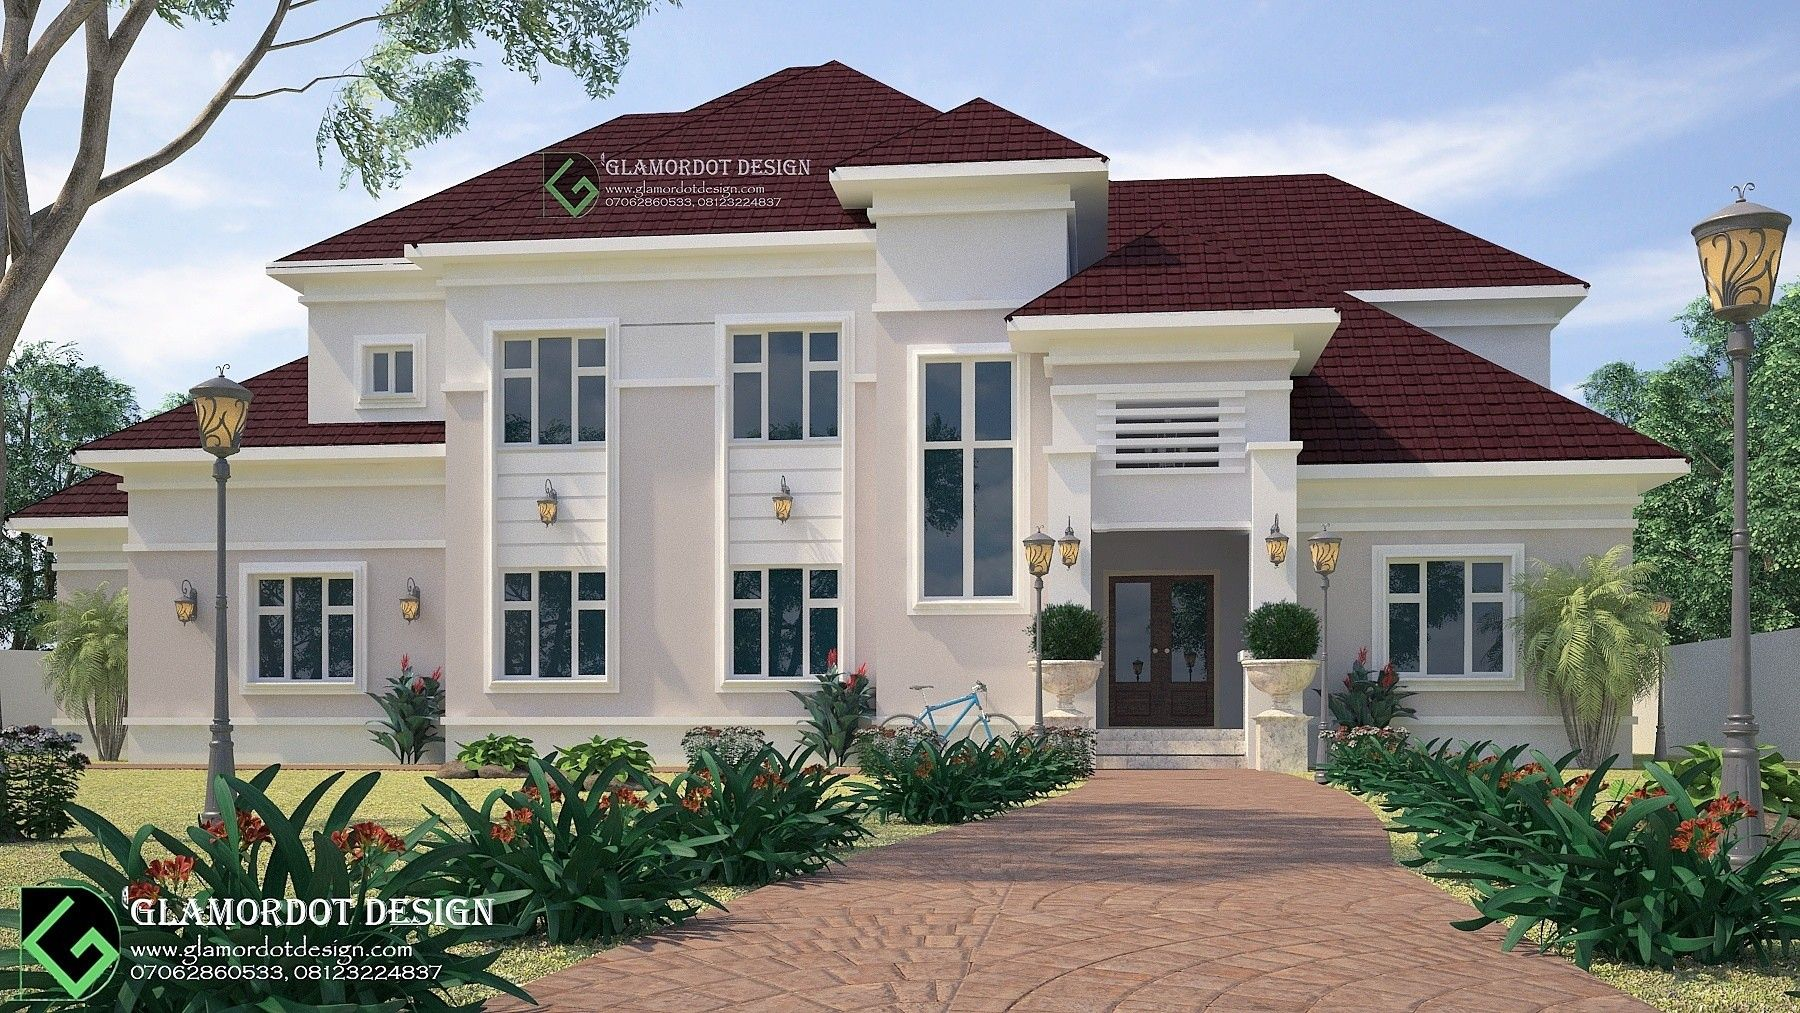 8 bedroom bungalow Mansion with a penthouse Country home